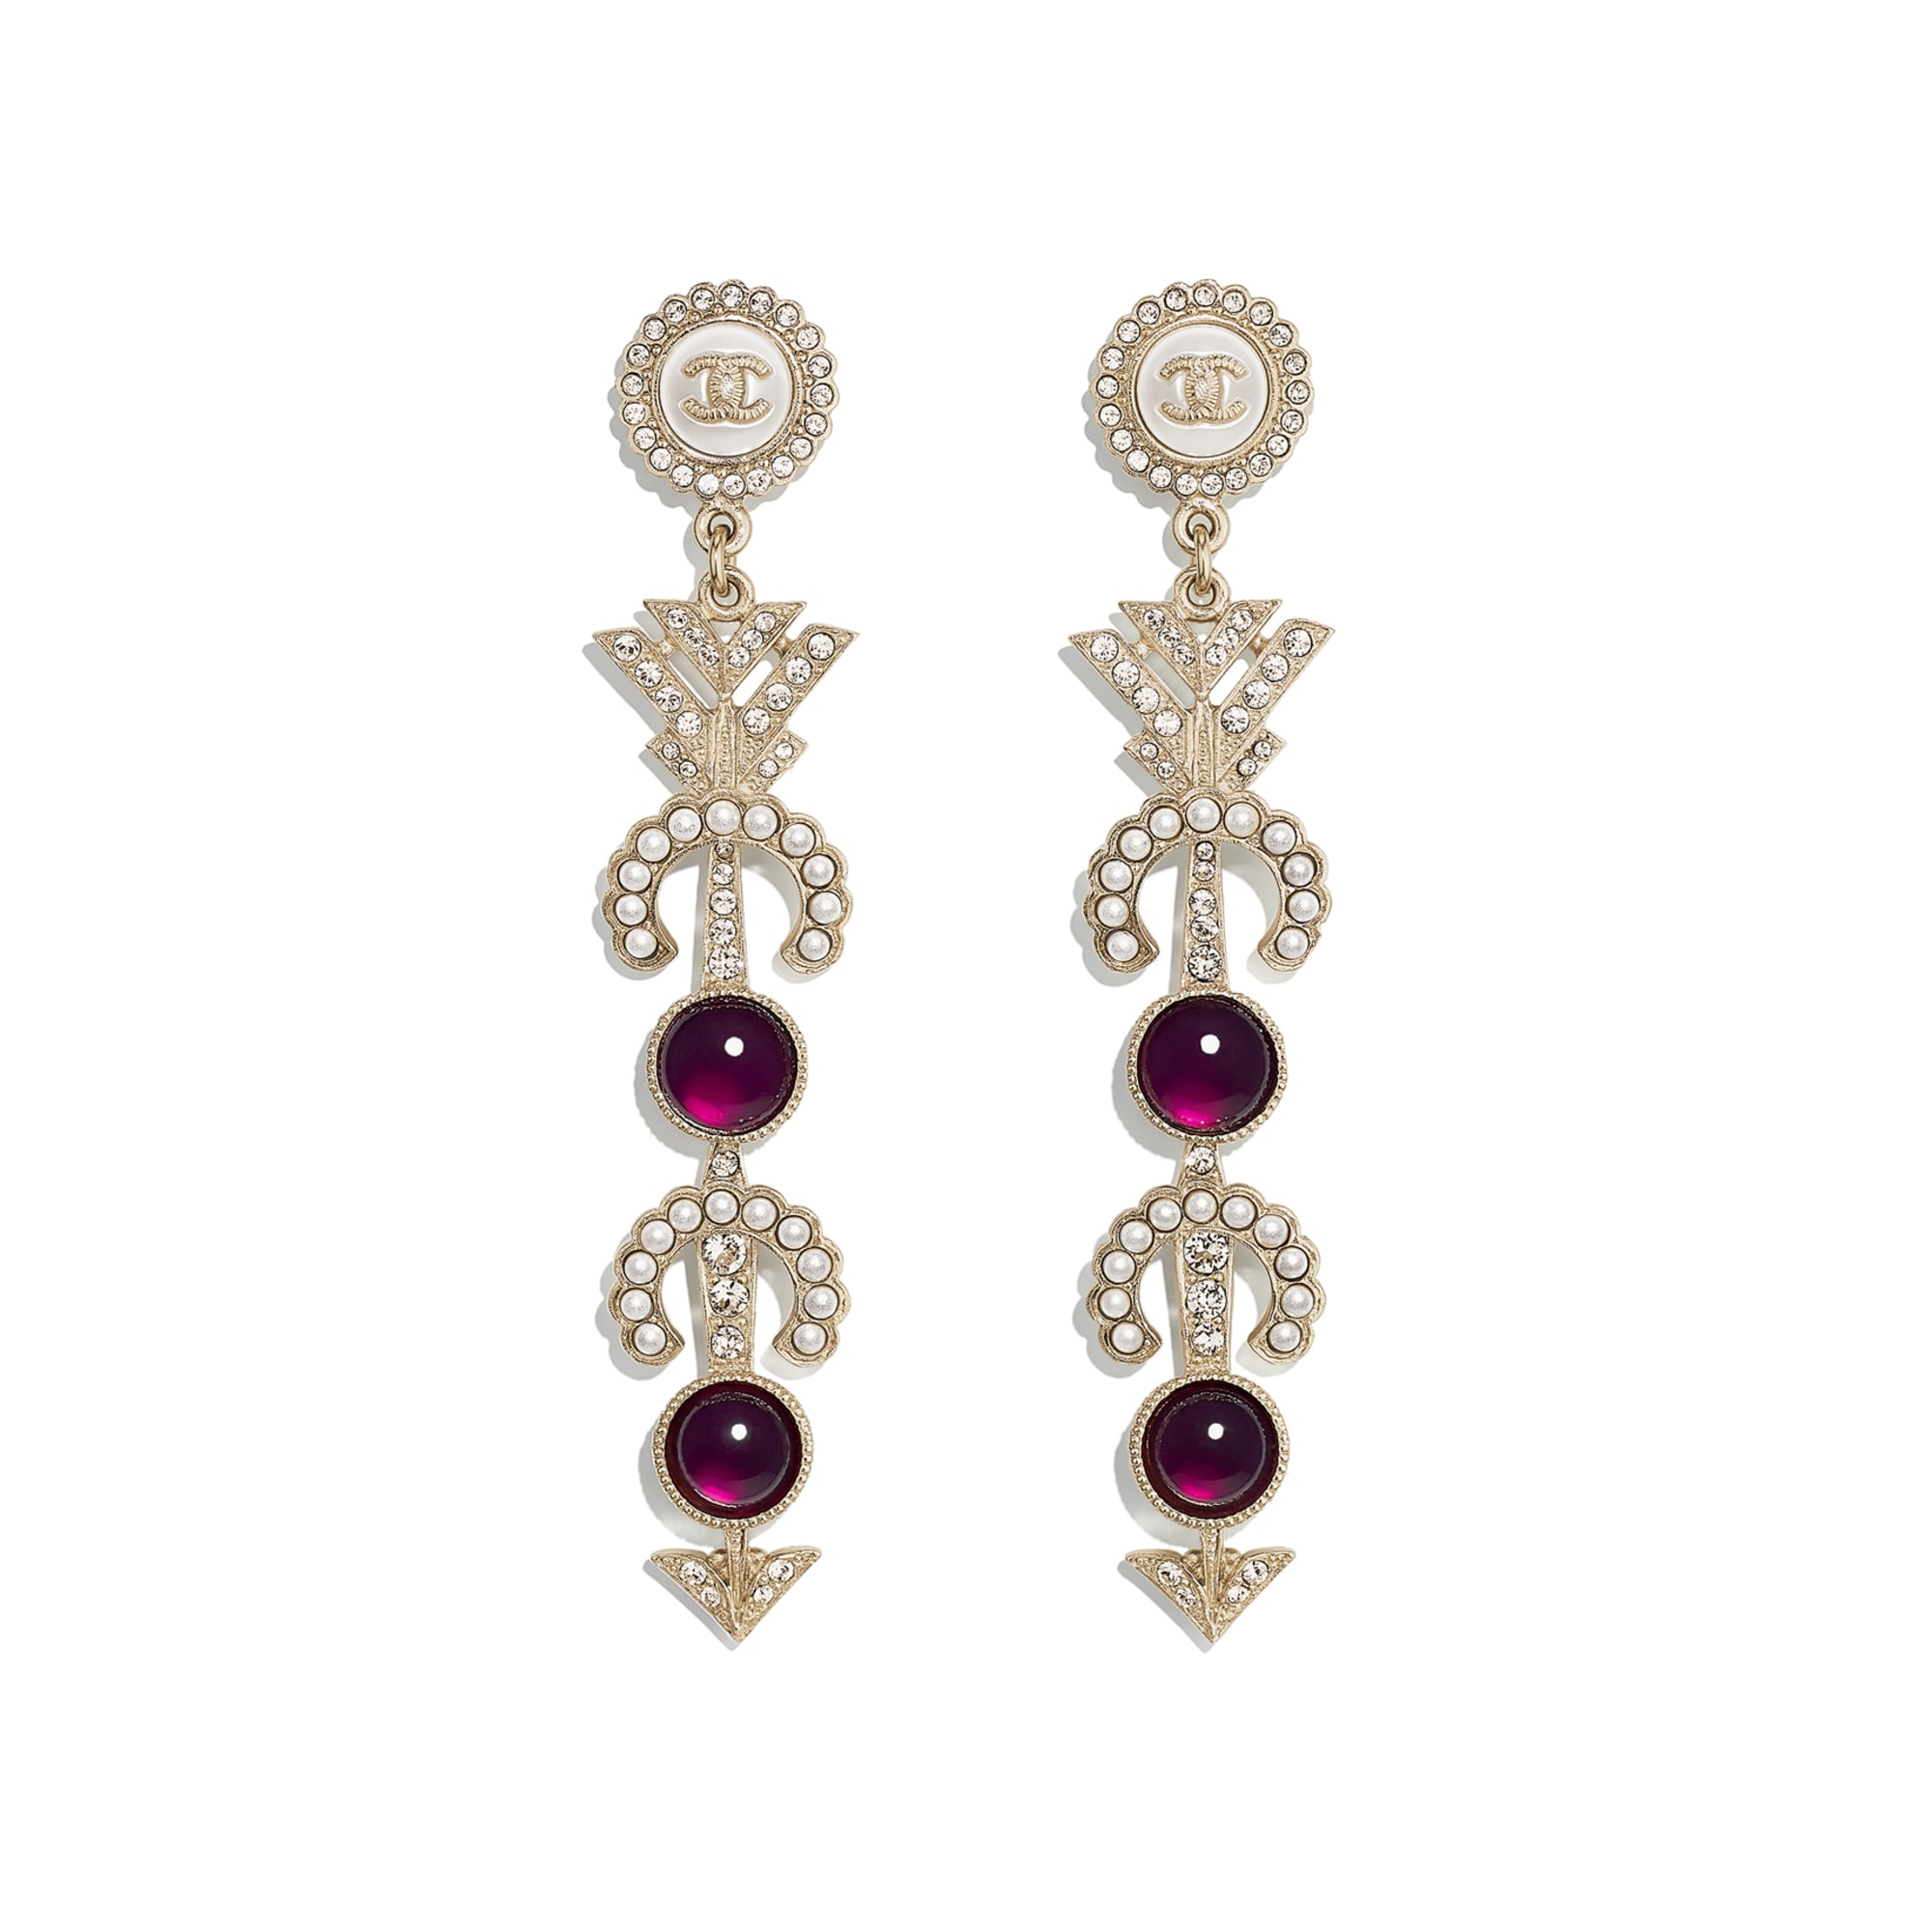 Earrings - Gold, Pearly White, Red & Crystal - Metal, Glass Pearls, Imitation Pearls & Strass - CHANEL - Default view - see standard sized version